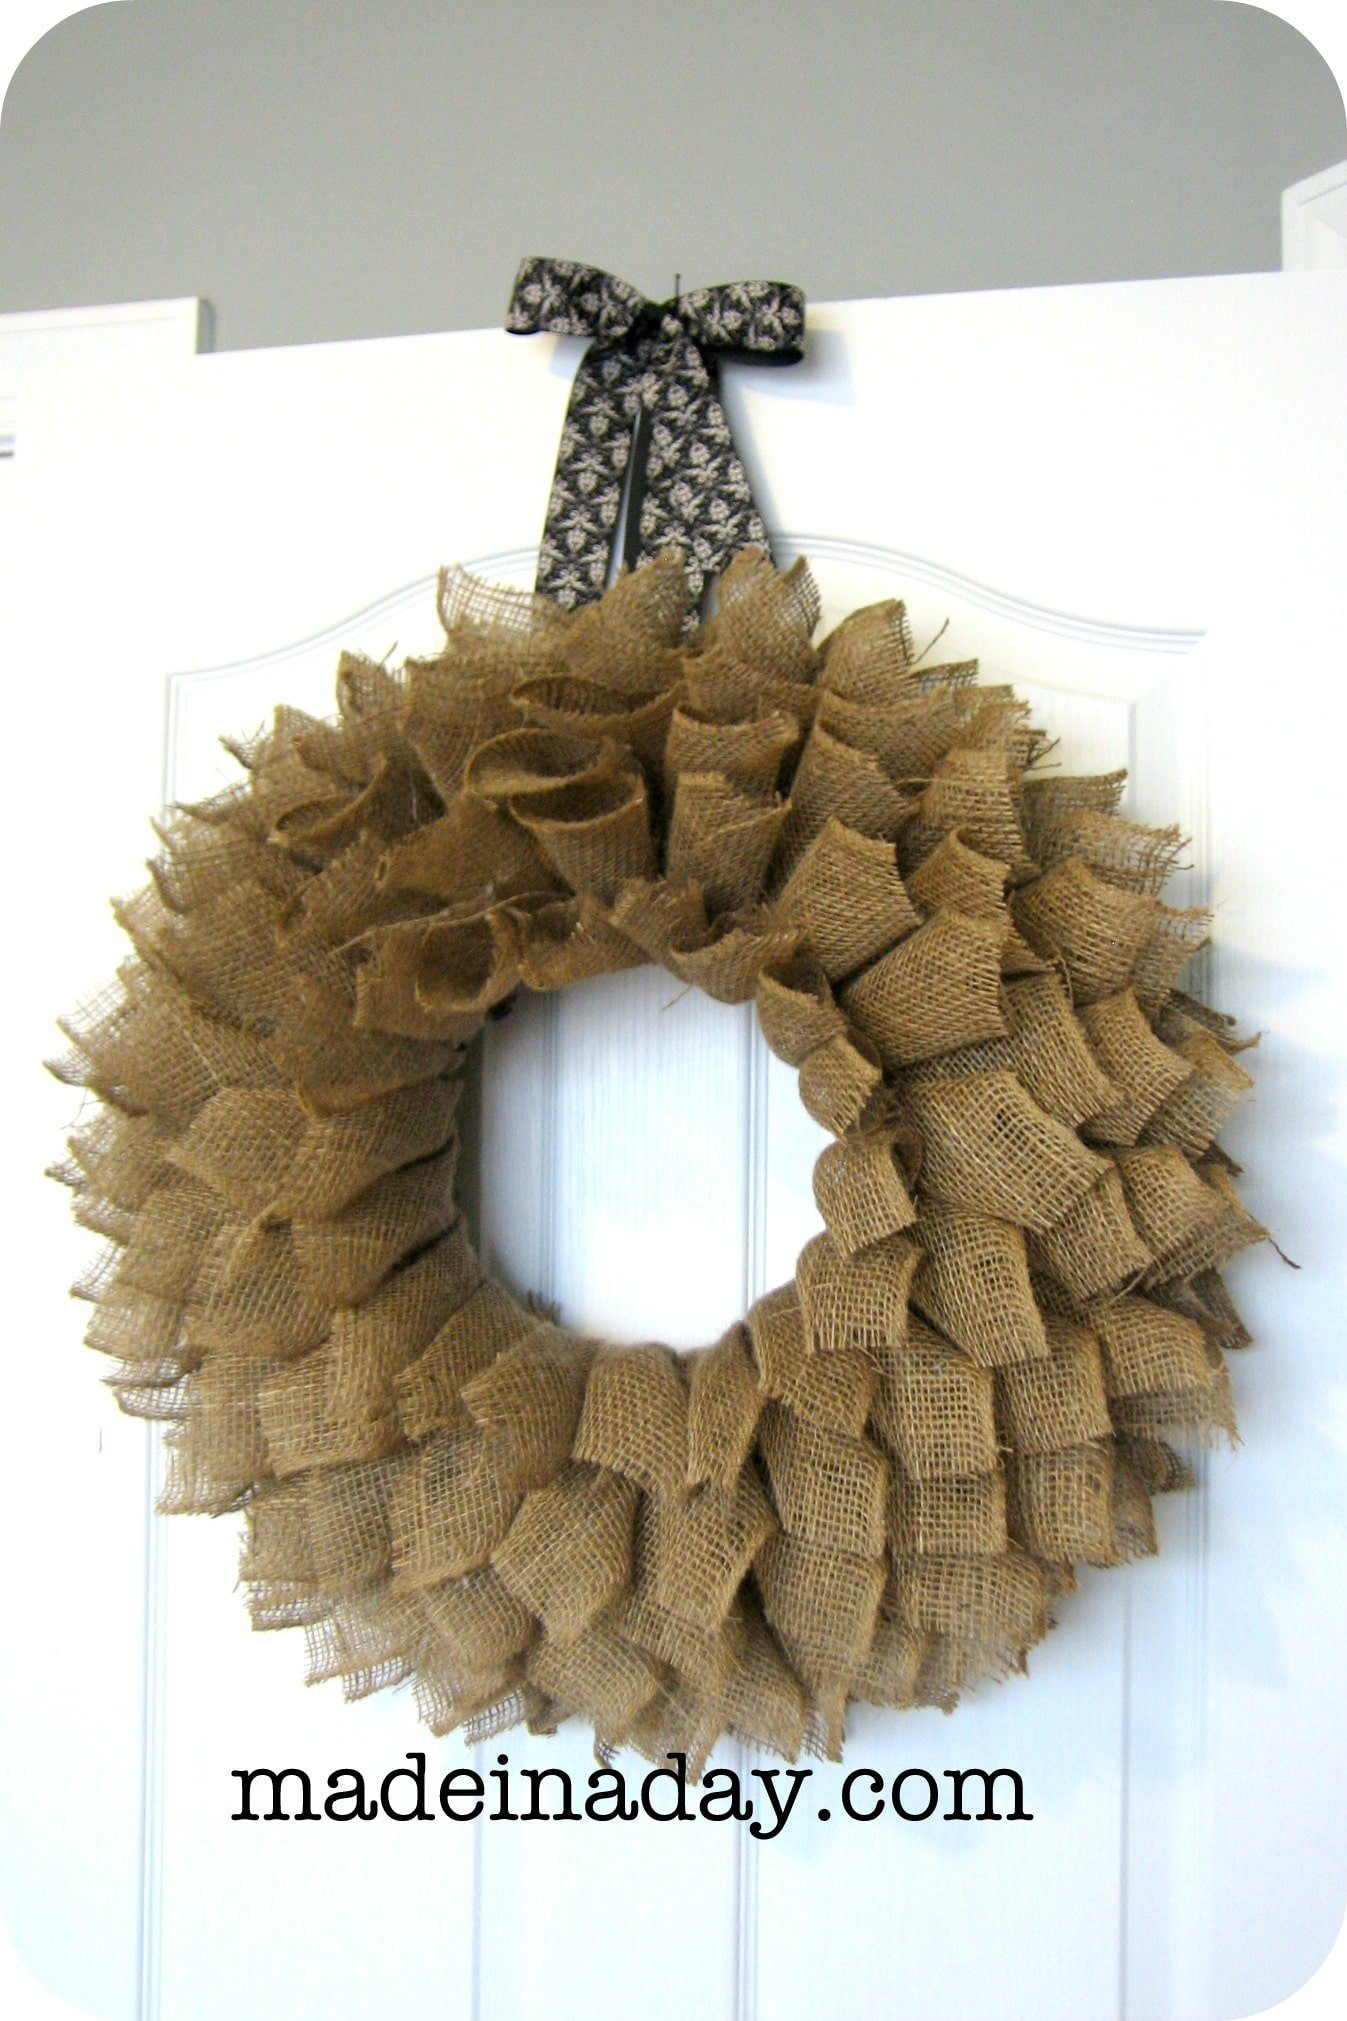 Burlap wreath made in a day for What to make with burlap